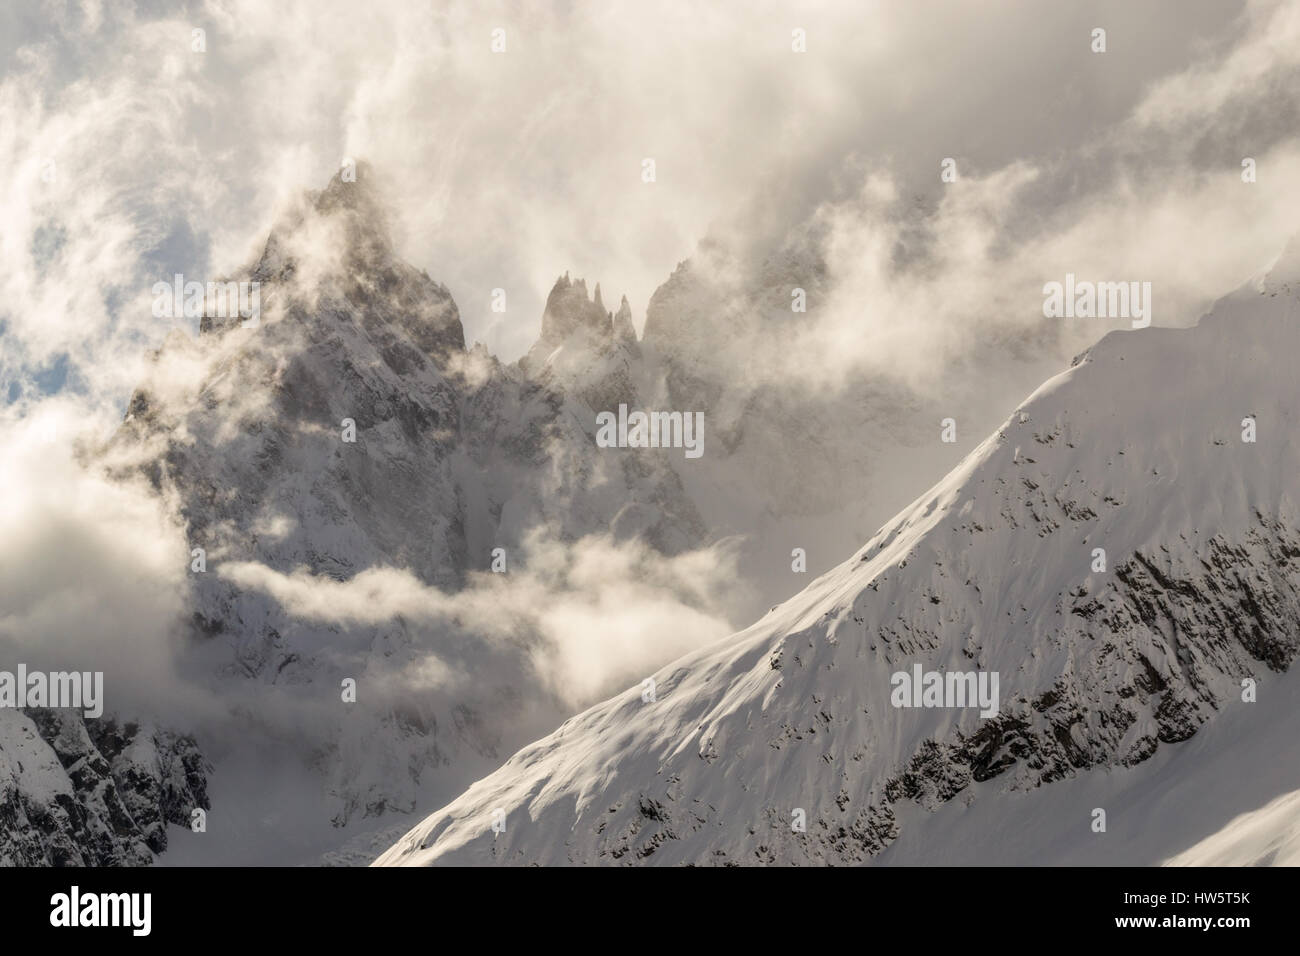 Alps. Cloudy heights of Mont Blanc, Italy. - Stock Image